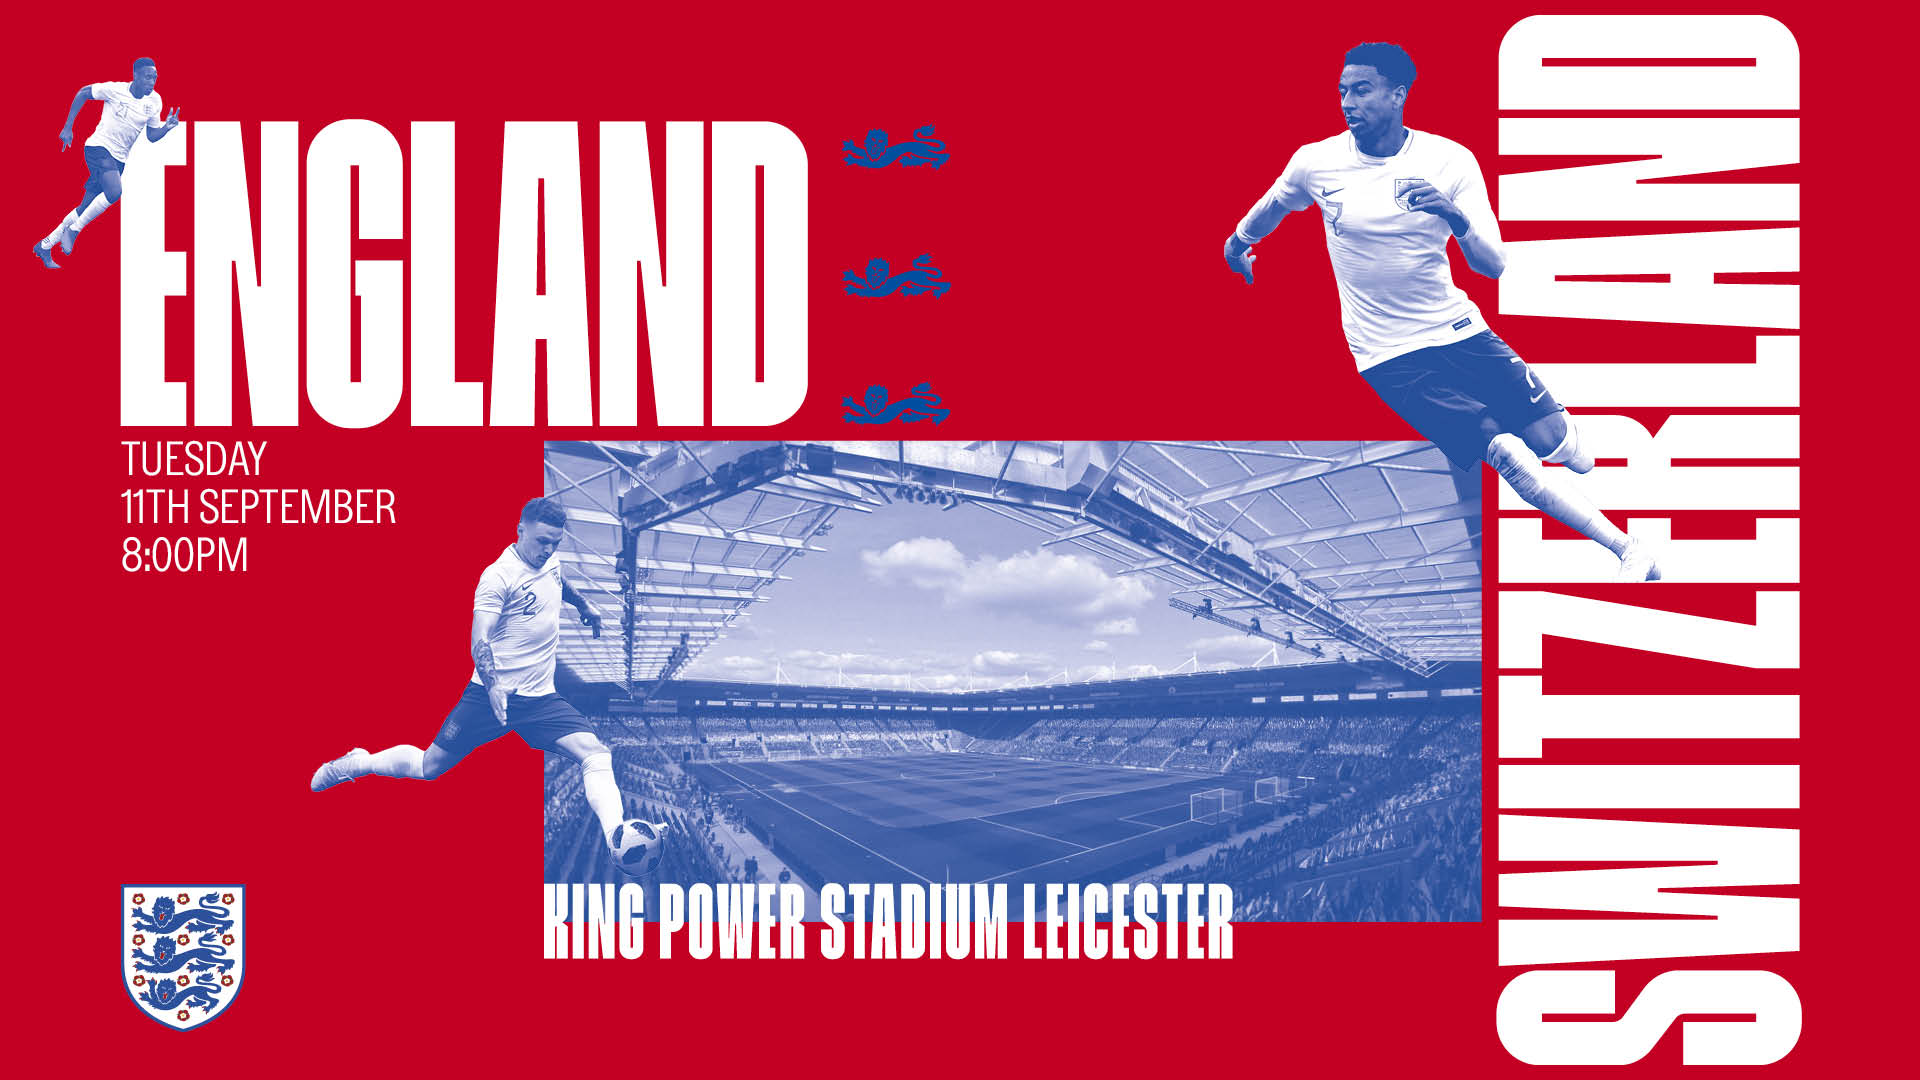 England to face Switzerland at The King Power